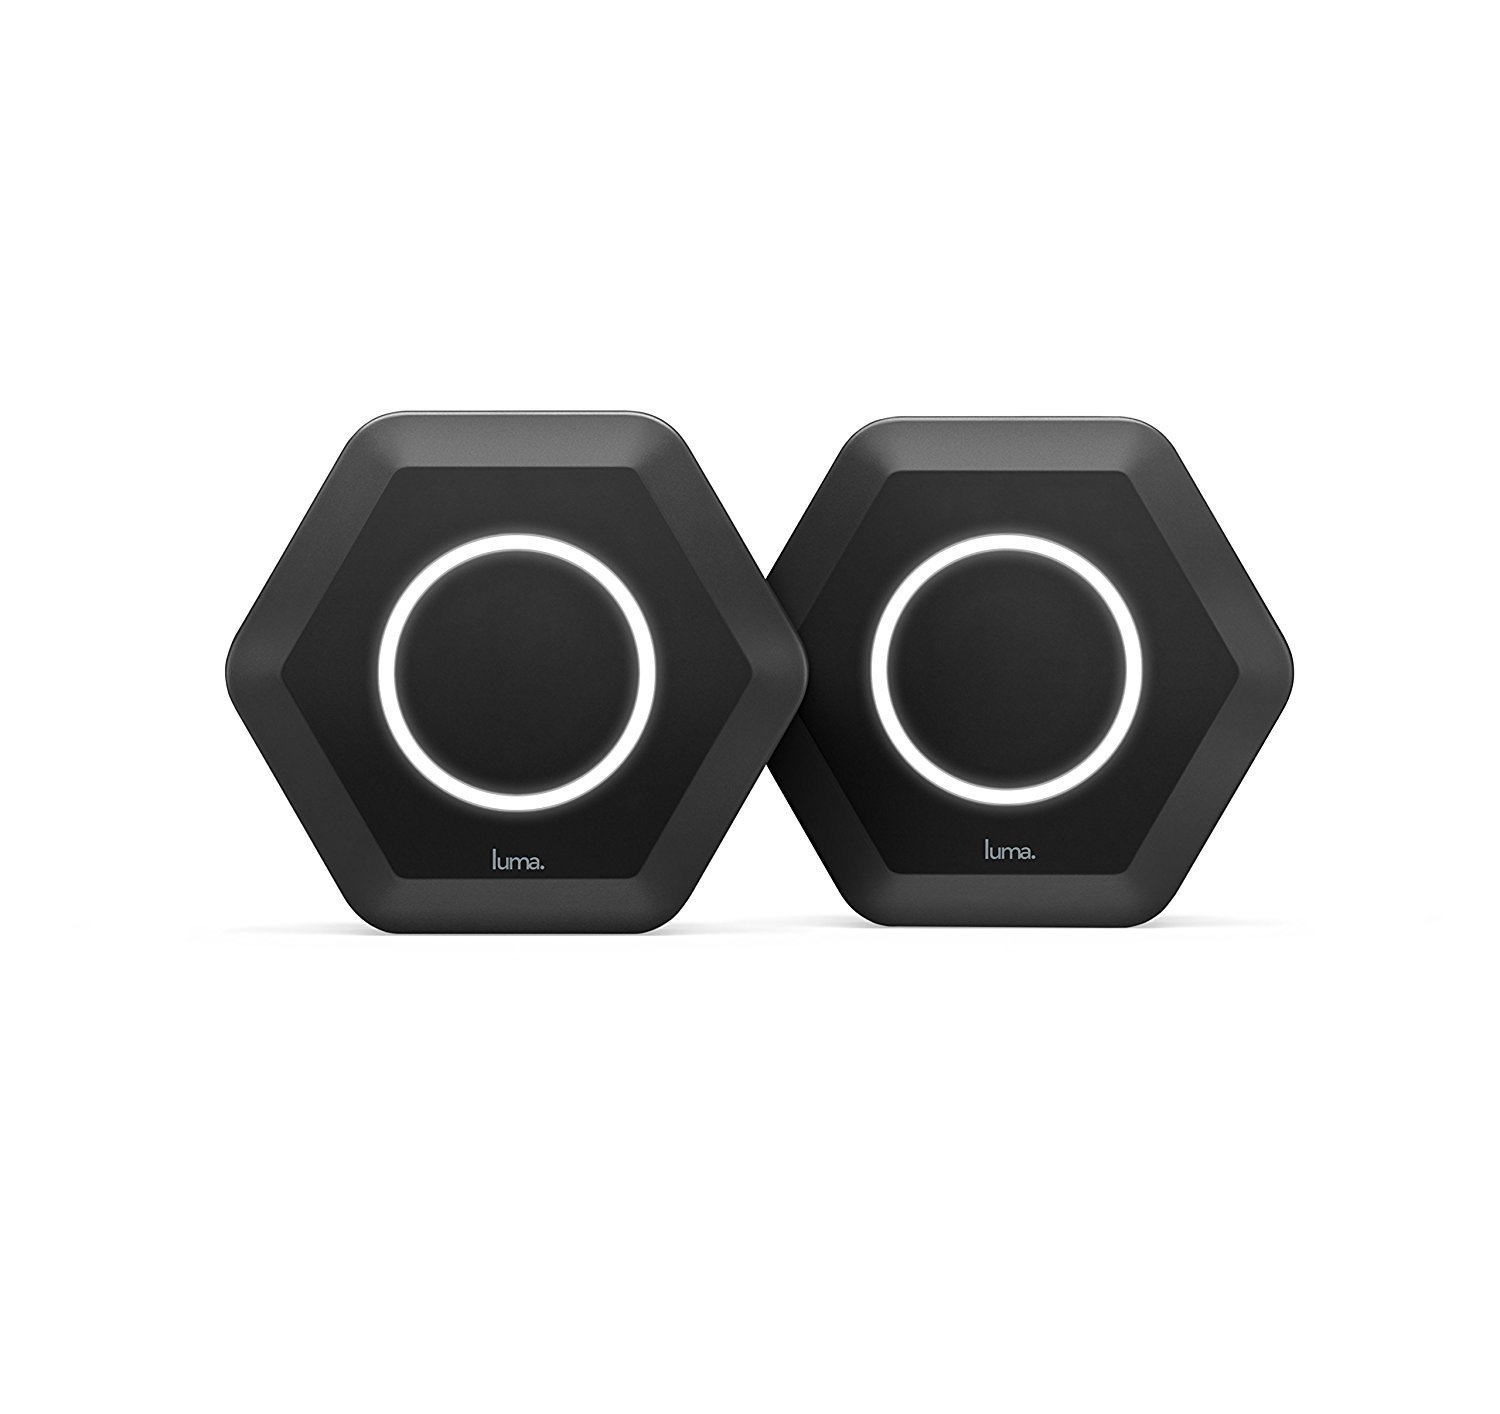 Luma Whole Home WiFi (2 Pack - Black) -  Replaces WiFi Extenders and Routers, Compatible with Alexa, Free Virus Blocking, Free Parental Controls, Gigabit Speed by Luma Home Wifi System